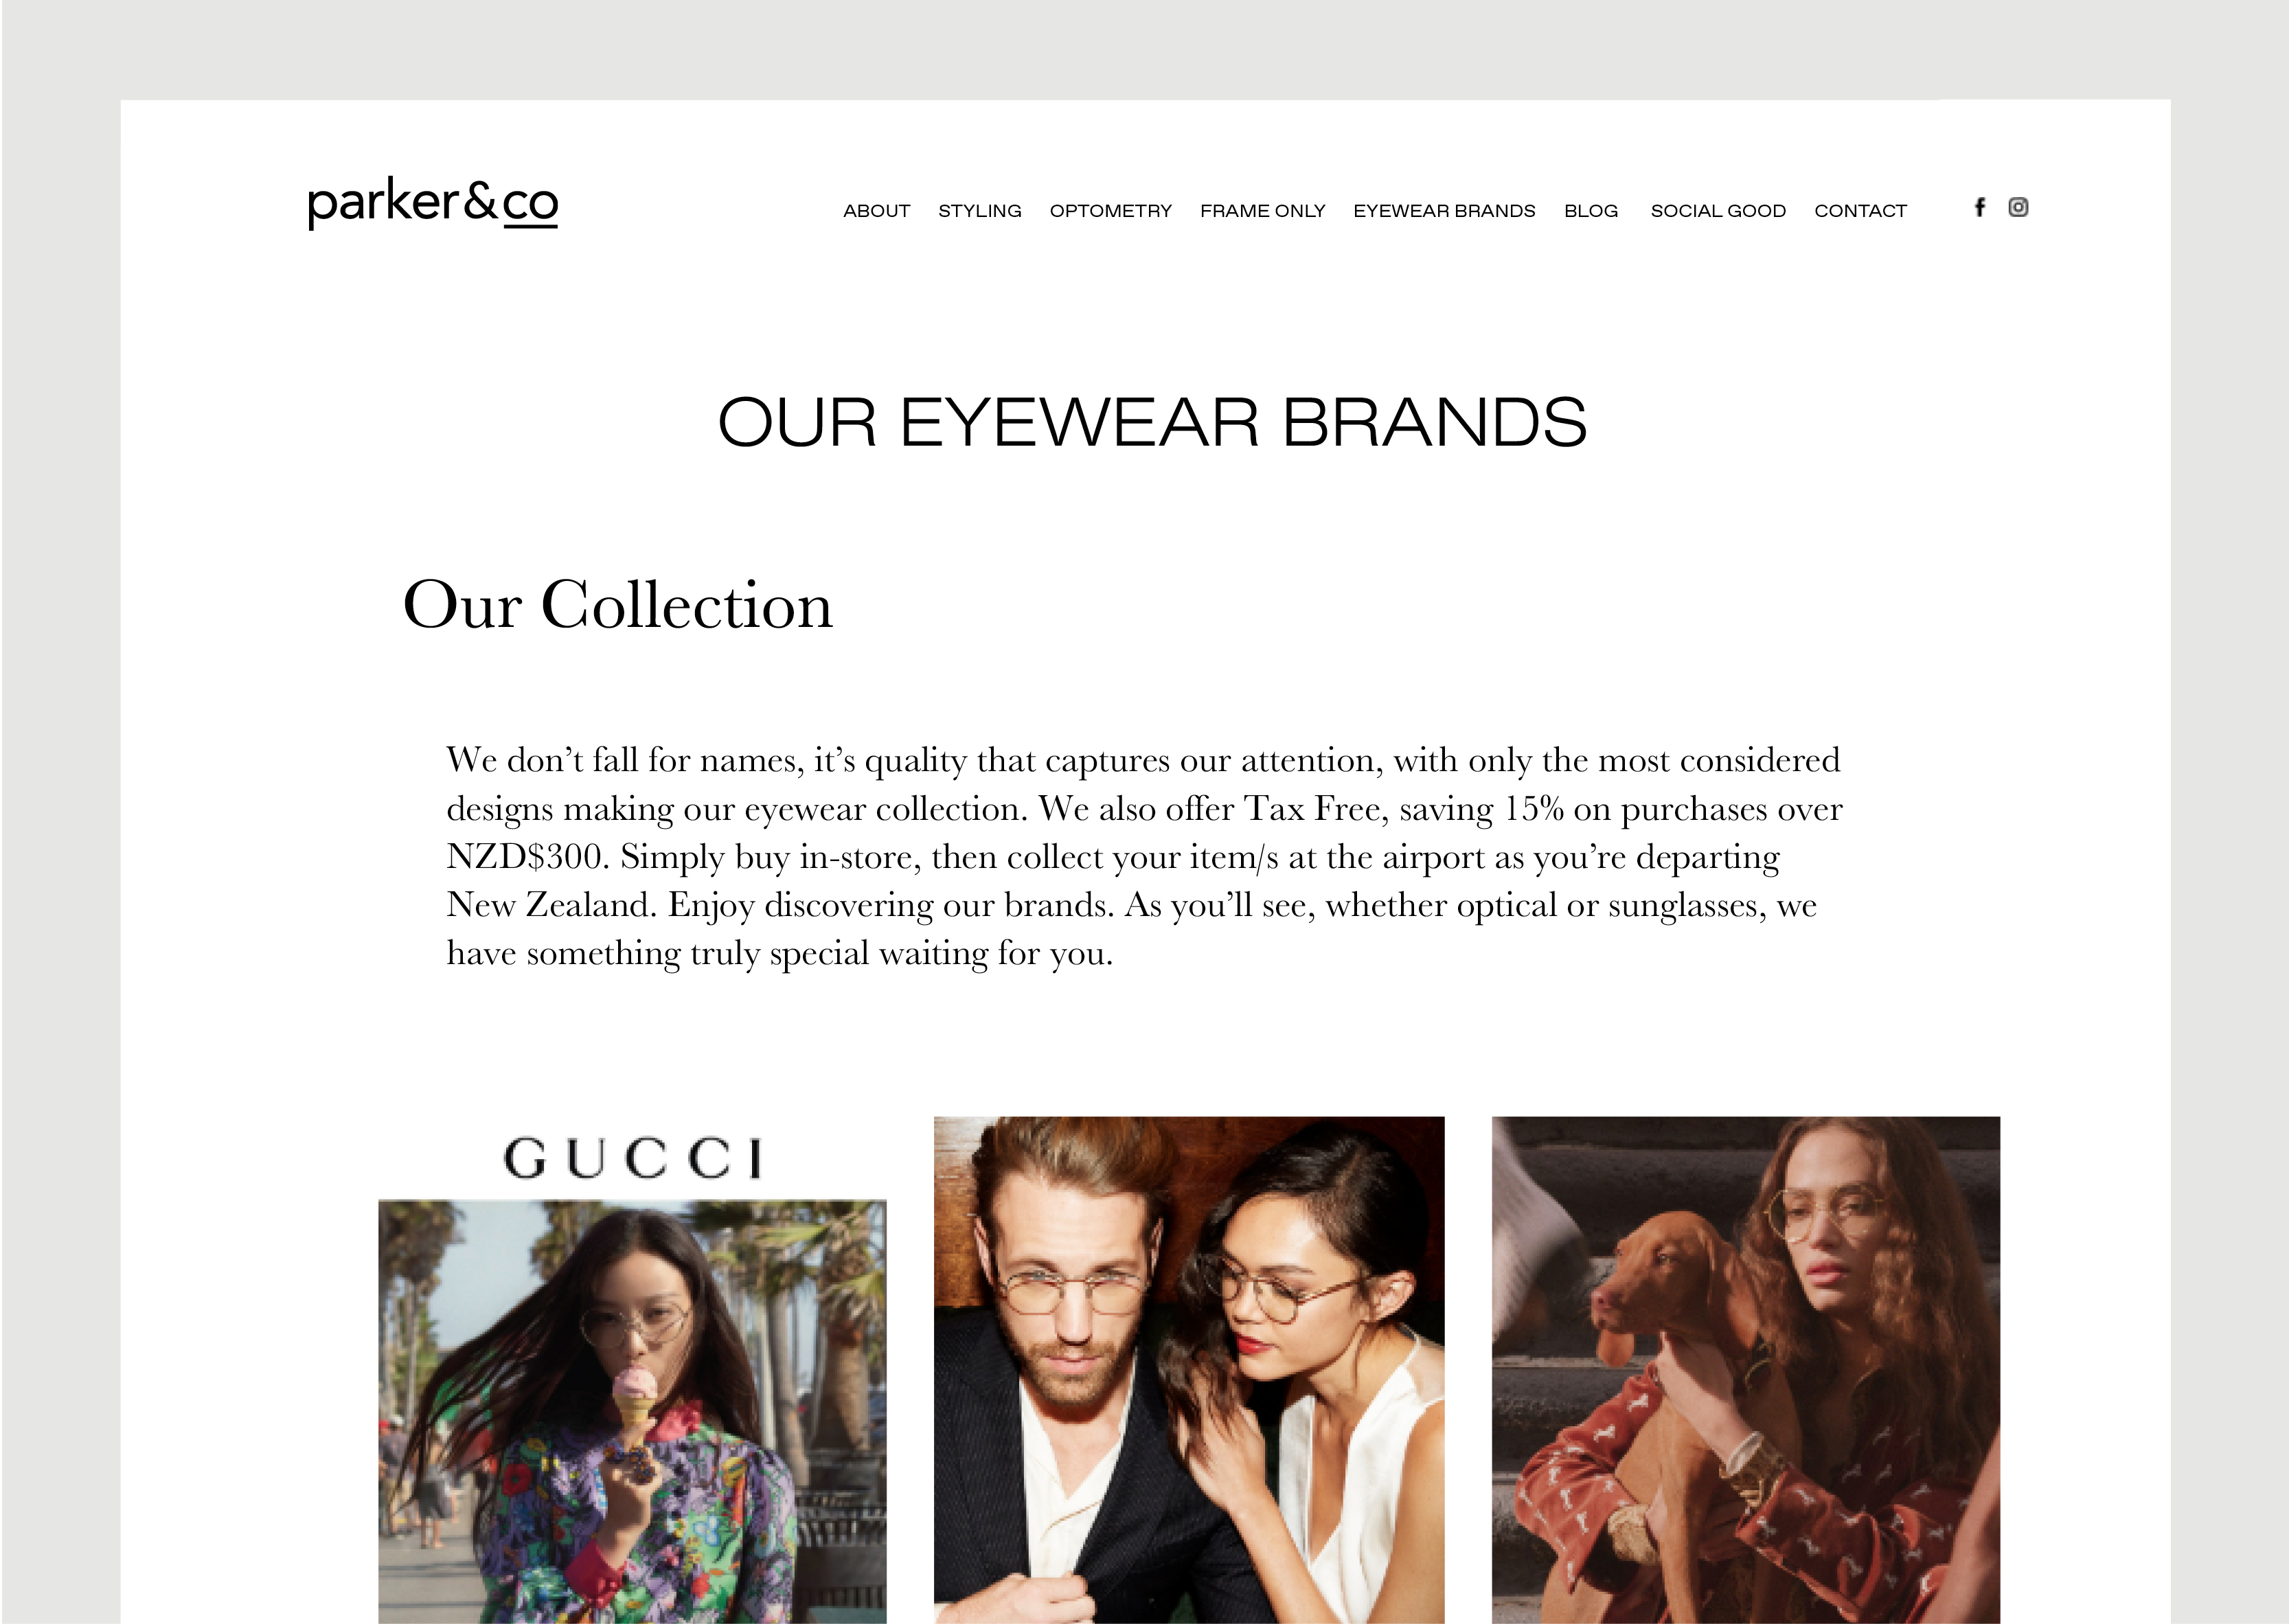 Parker and Co website – Eyewear Brands page – shows images of designer brands and large introductory copy